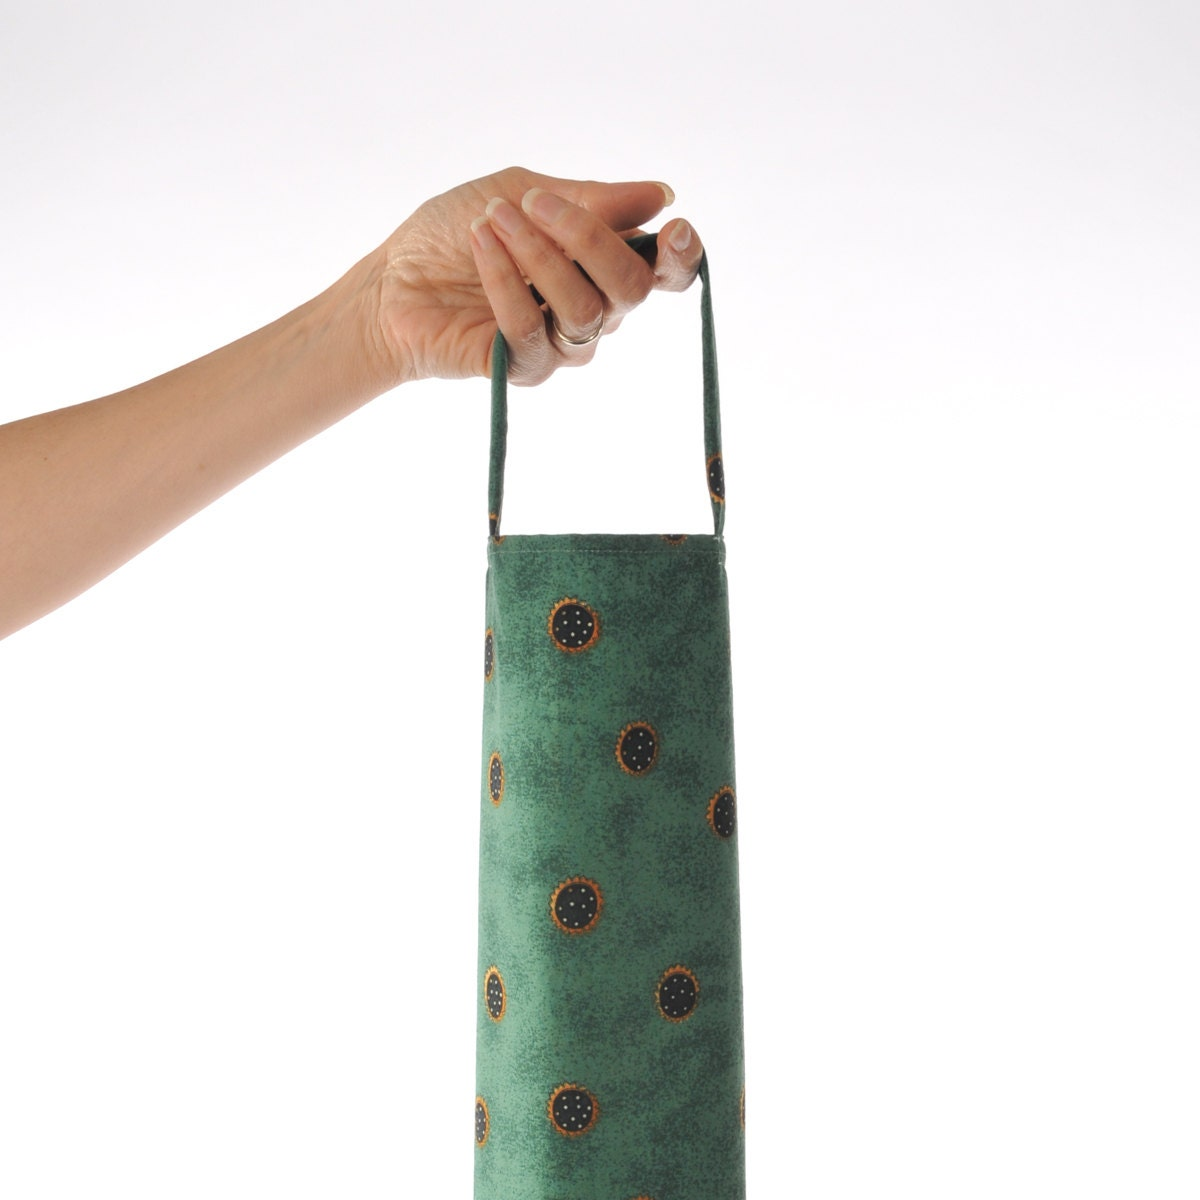 Plastic bag dispenser grocery holder debbie mumm green